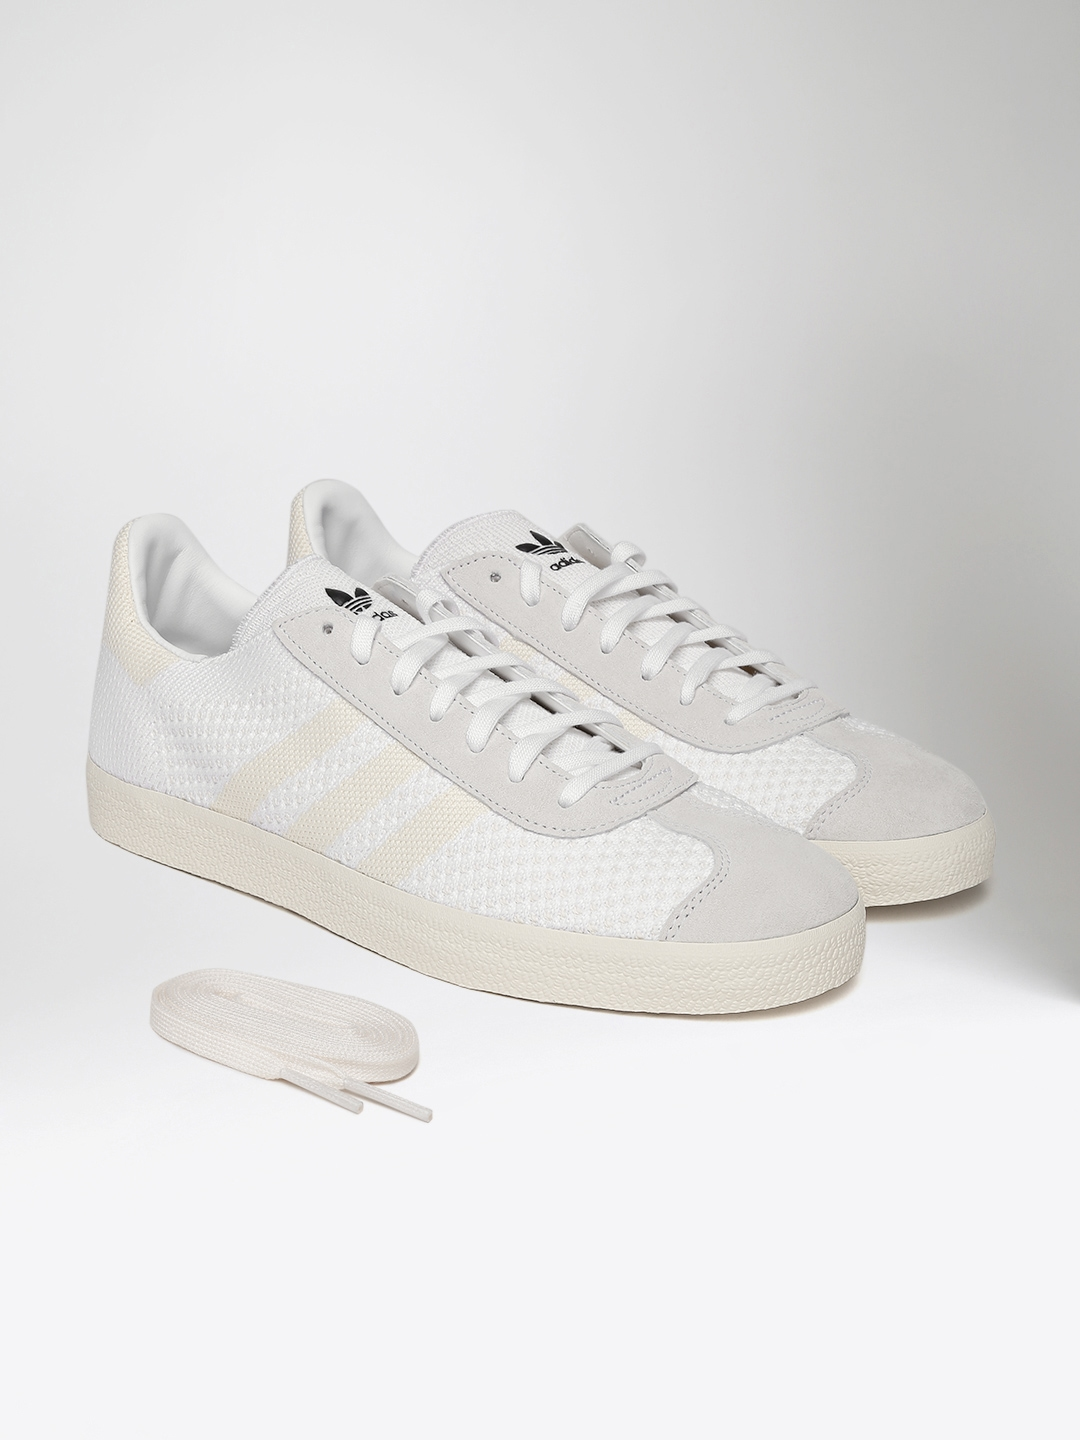 8bb4d629fa0a ADIDAS Originals Men White   Cream-Coloured Gazelle Prime Knit Woven  Sneakers